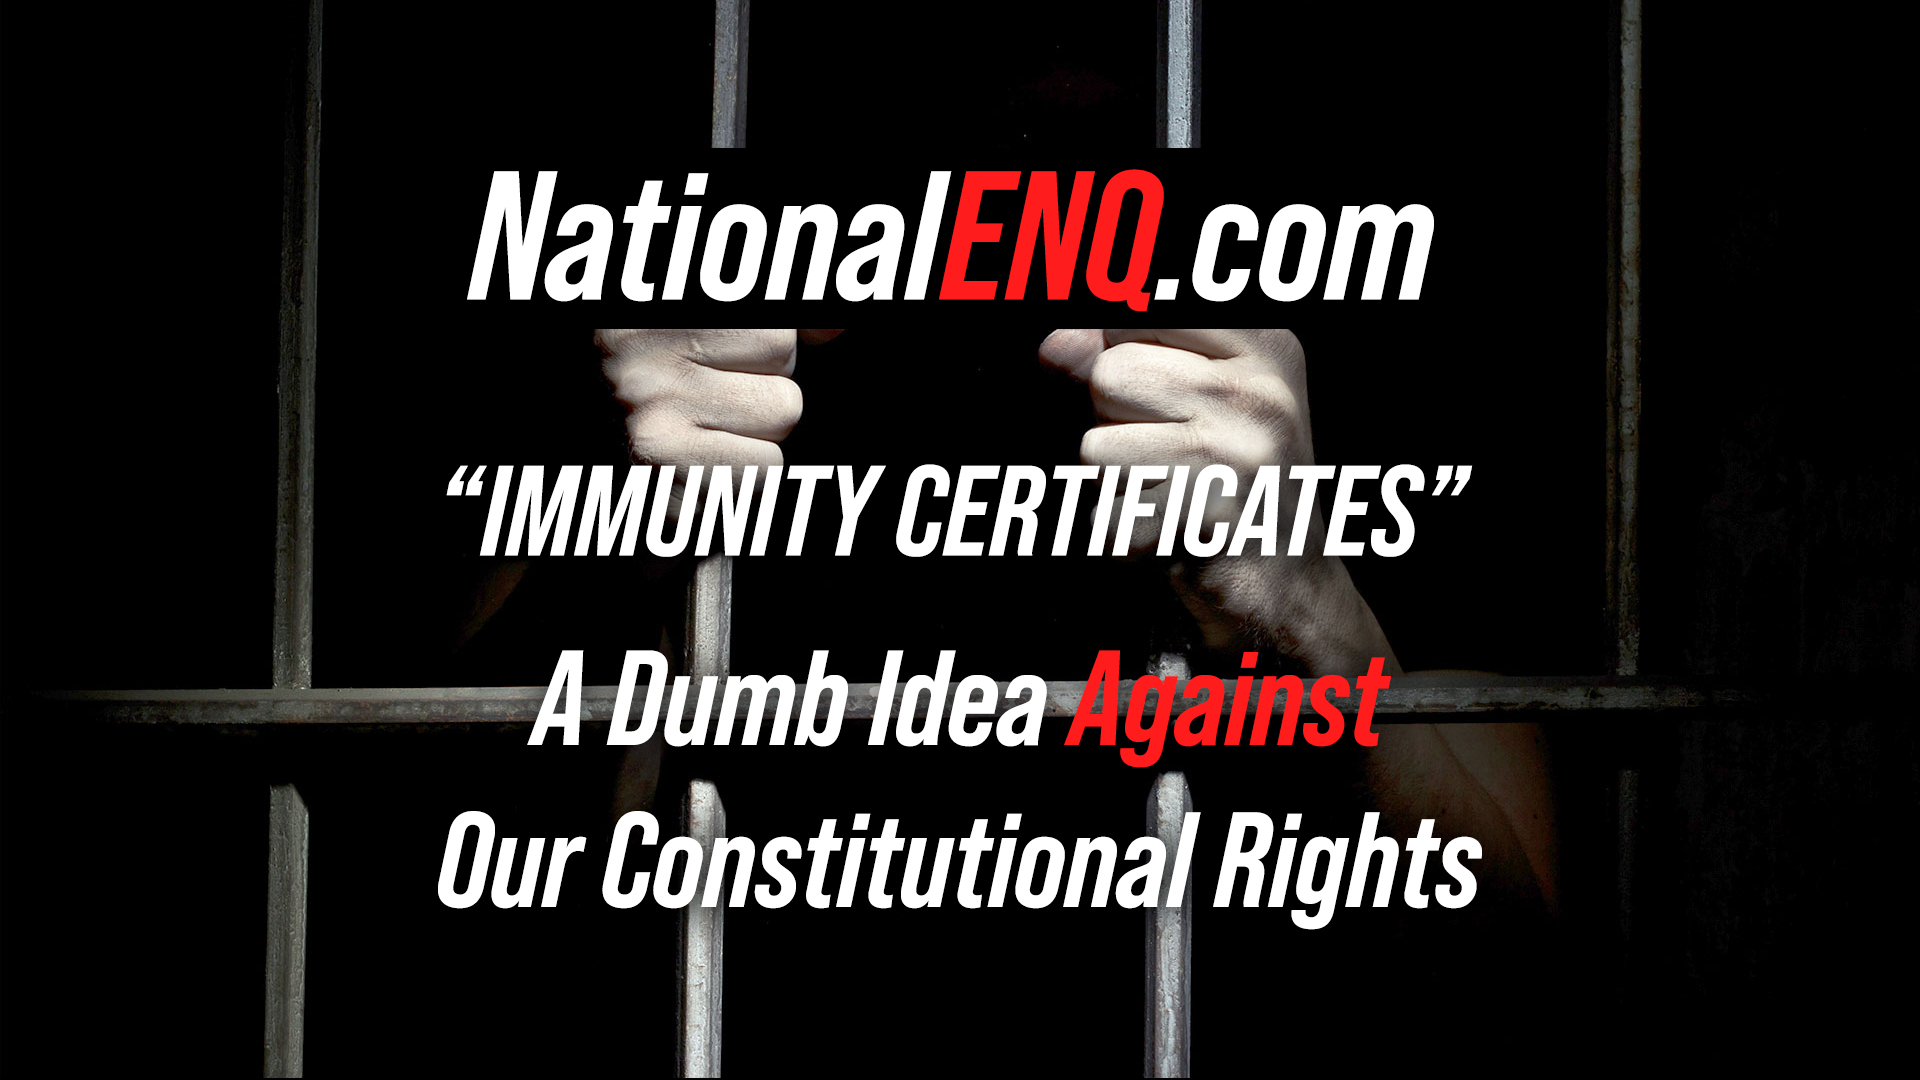 "National ENQ News: Coronavirus Mass Tests & COVID-19 ""Certificates of Immunity"", a Dumb Idea, as Freedom Is an Undisputable Right"